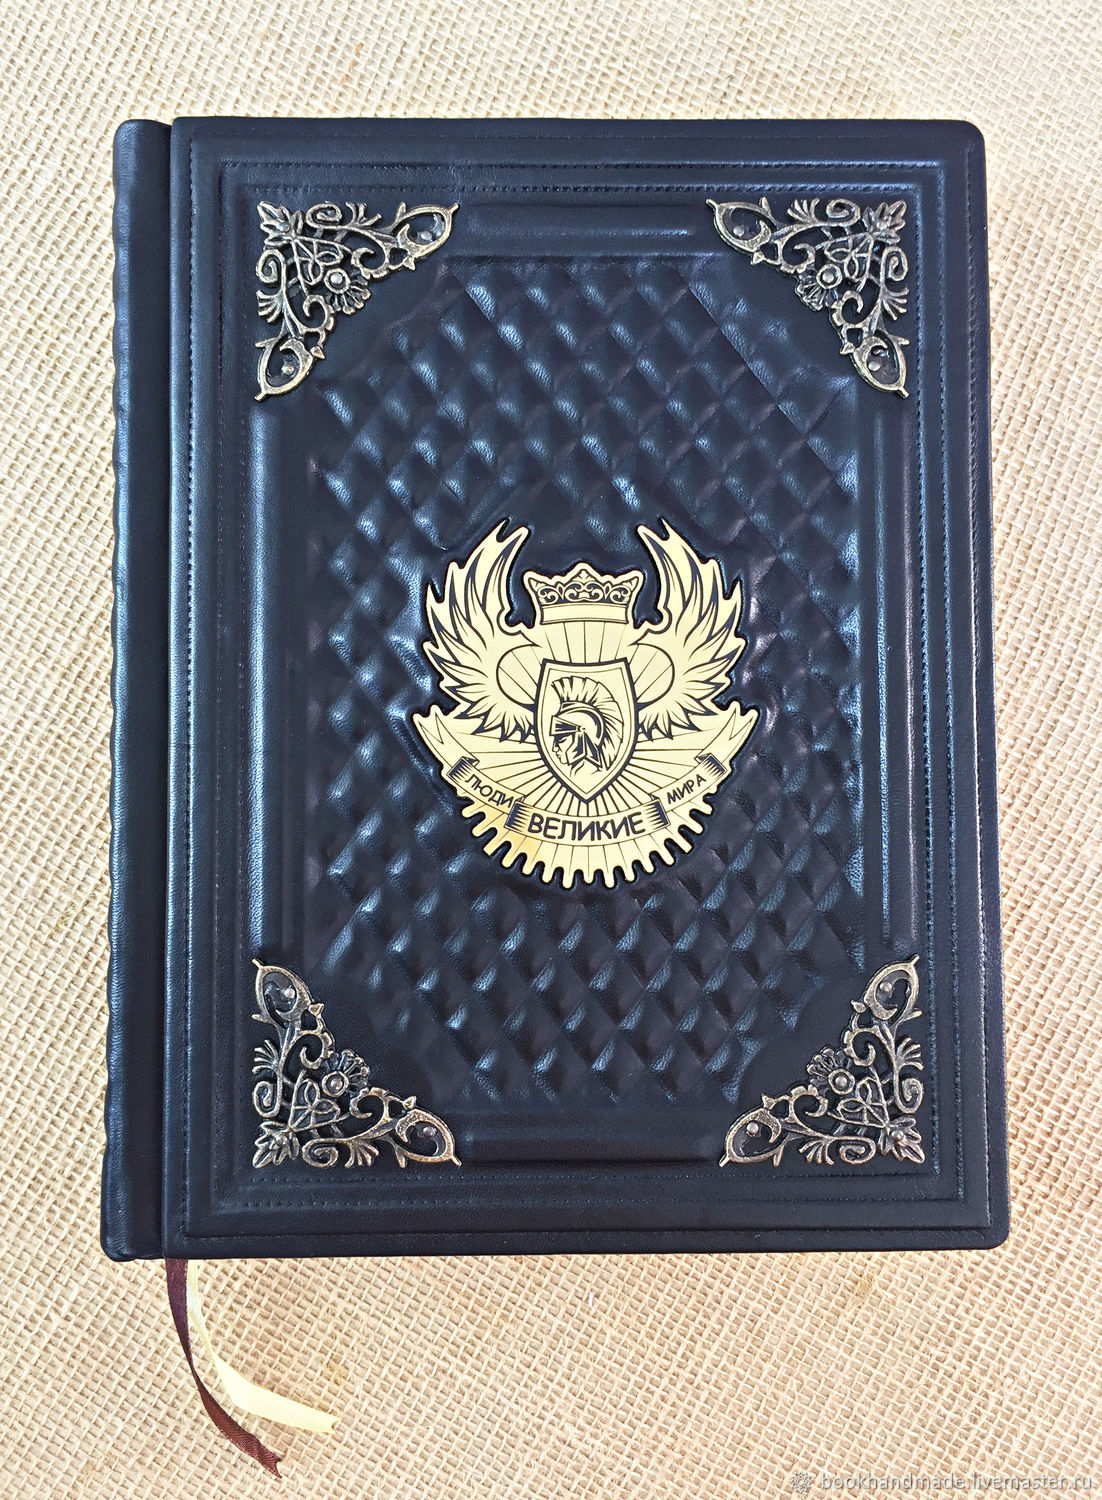 GREAT PEOPLE of the WORLD (gift leather book), Name souvenirs, Moscow,  Фото №1